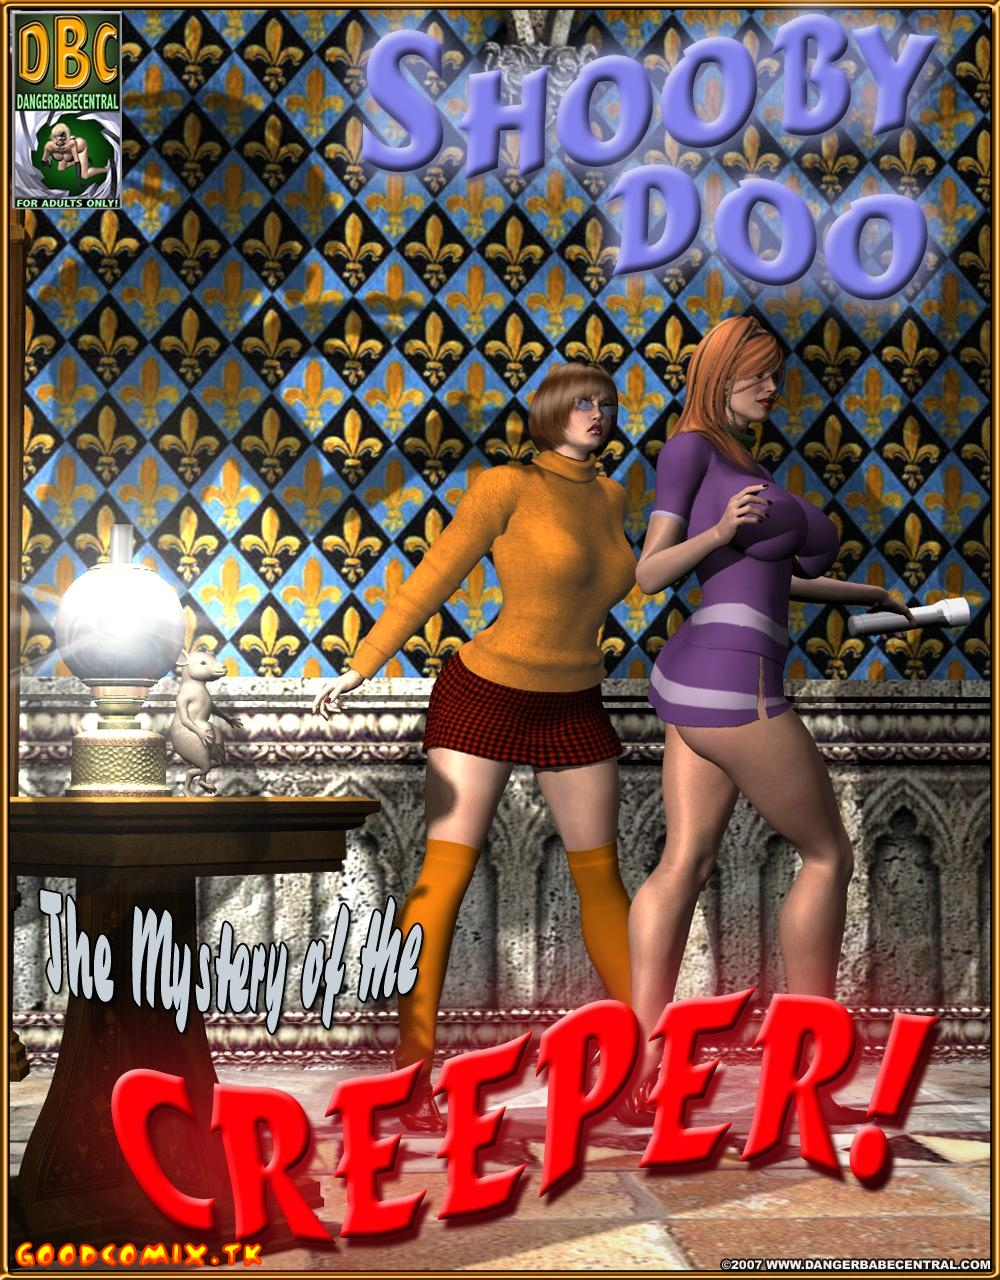 Goodcomix.tk Scooby Doo - [Danger Babe Central] - The Mystery of the CREEPER!